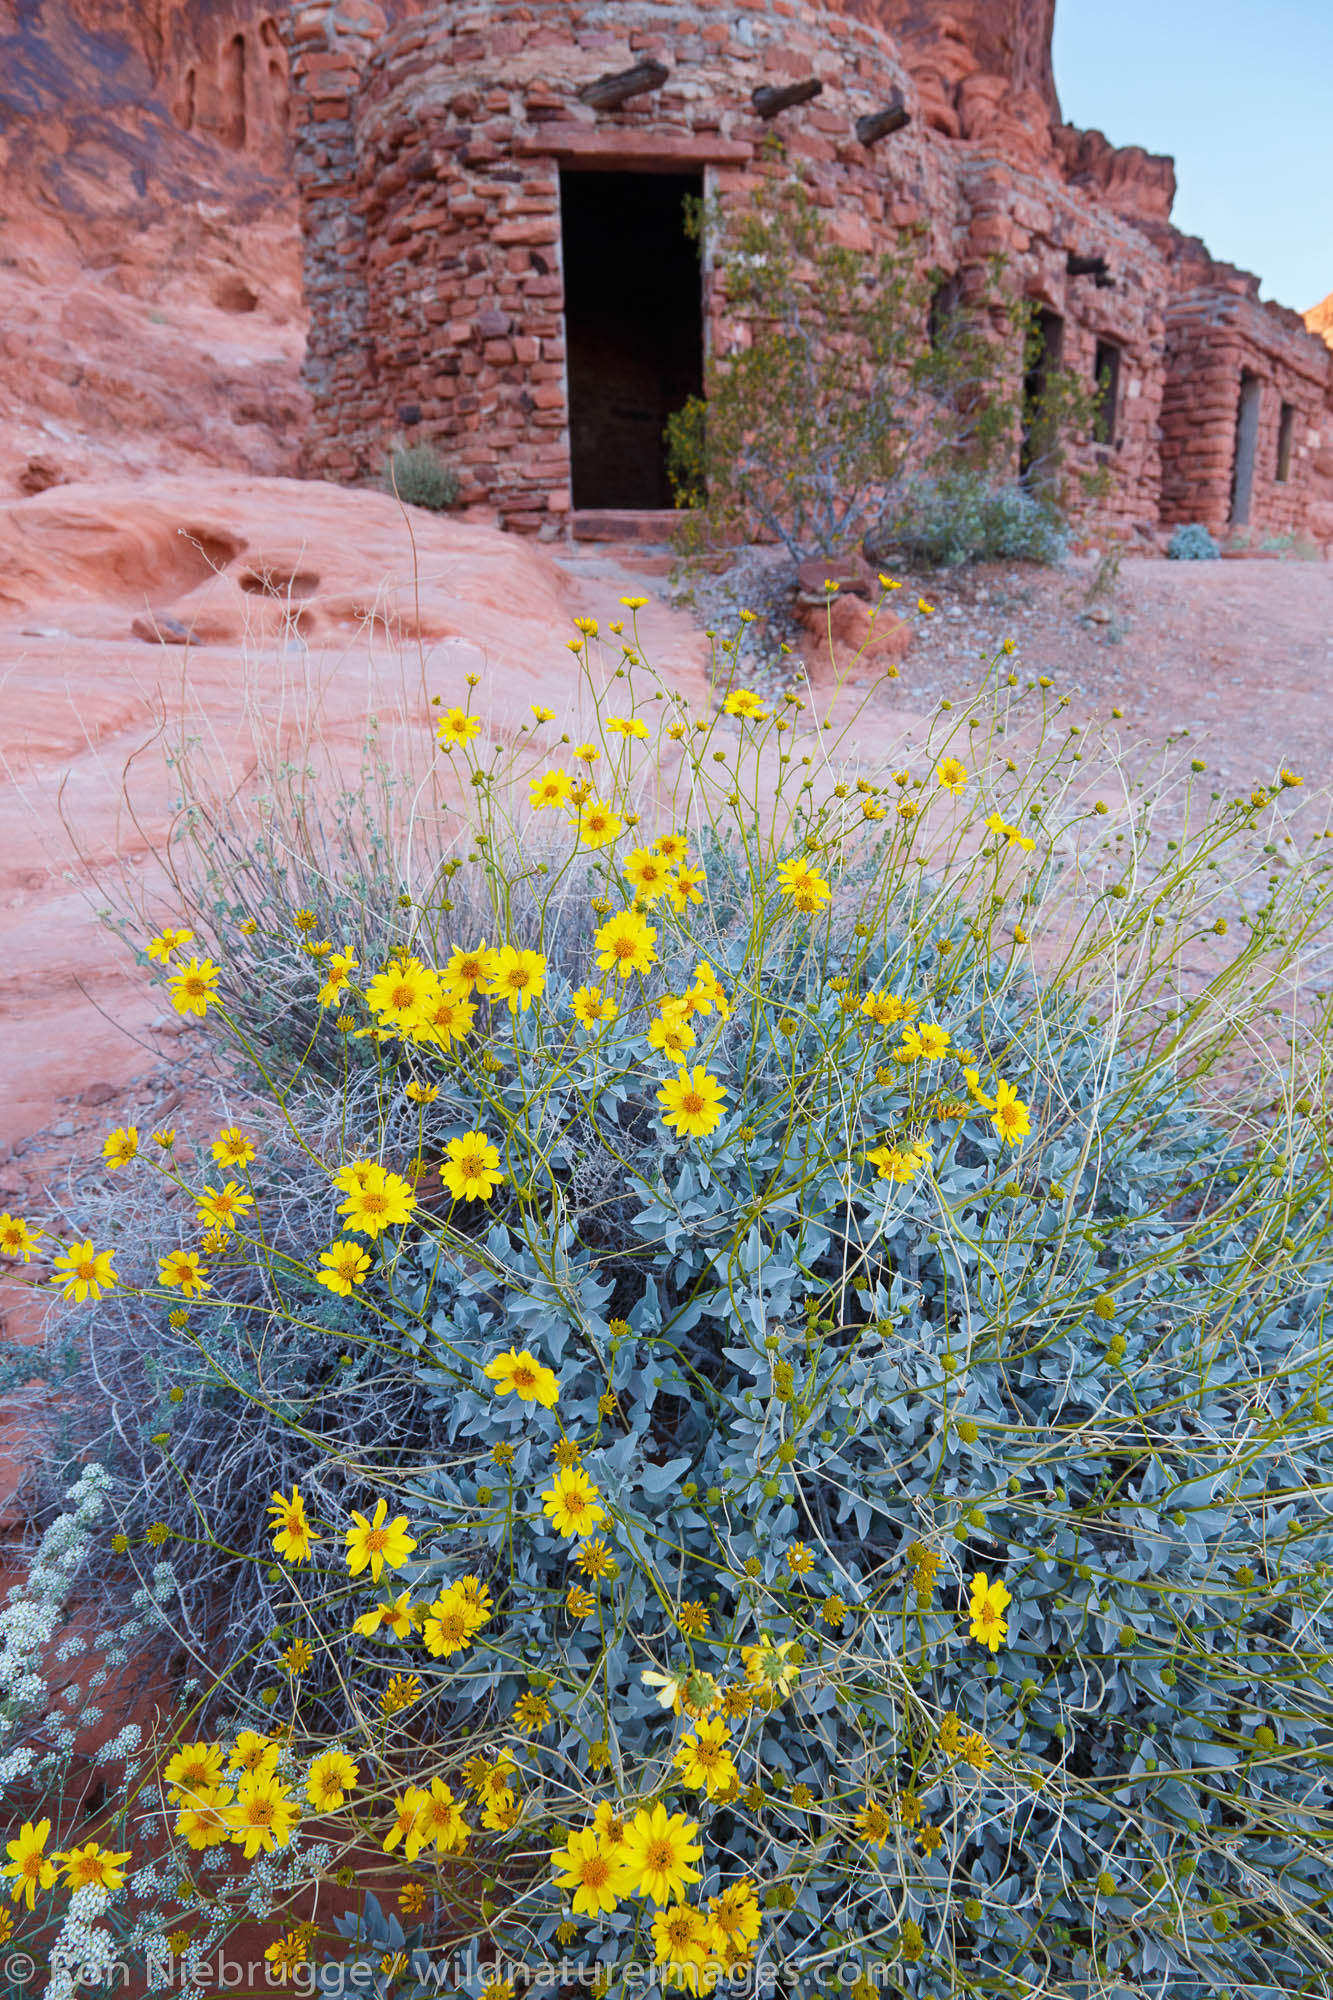 The cabins in Valley of Fire State Park, near Las Vegas, Nevada.